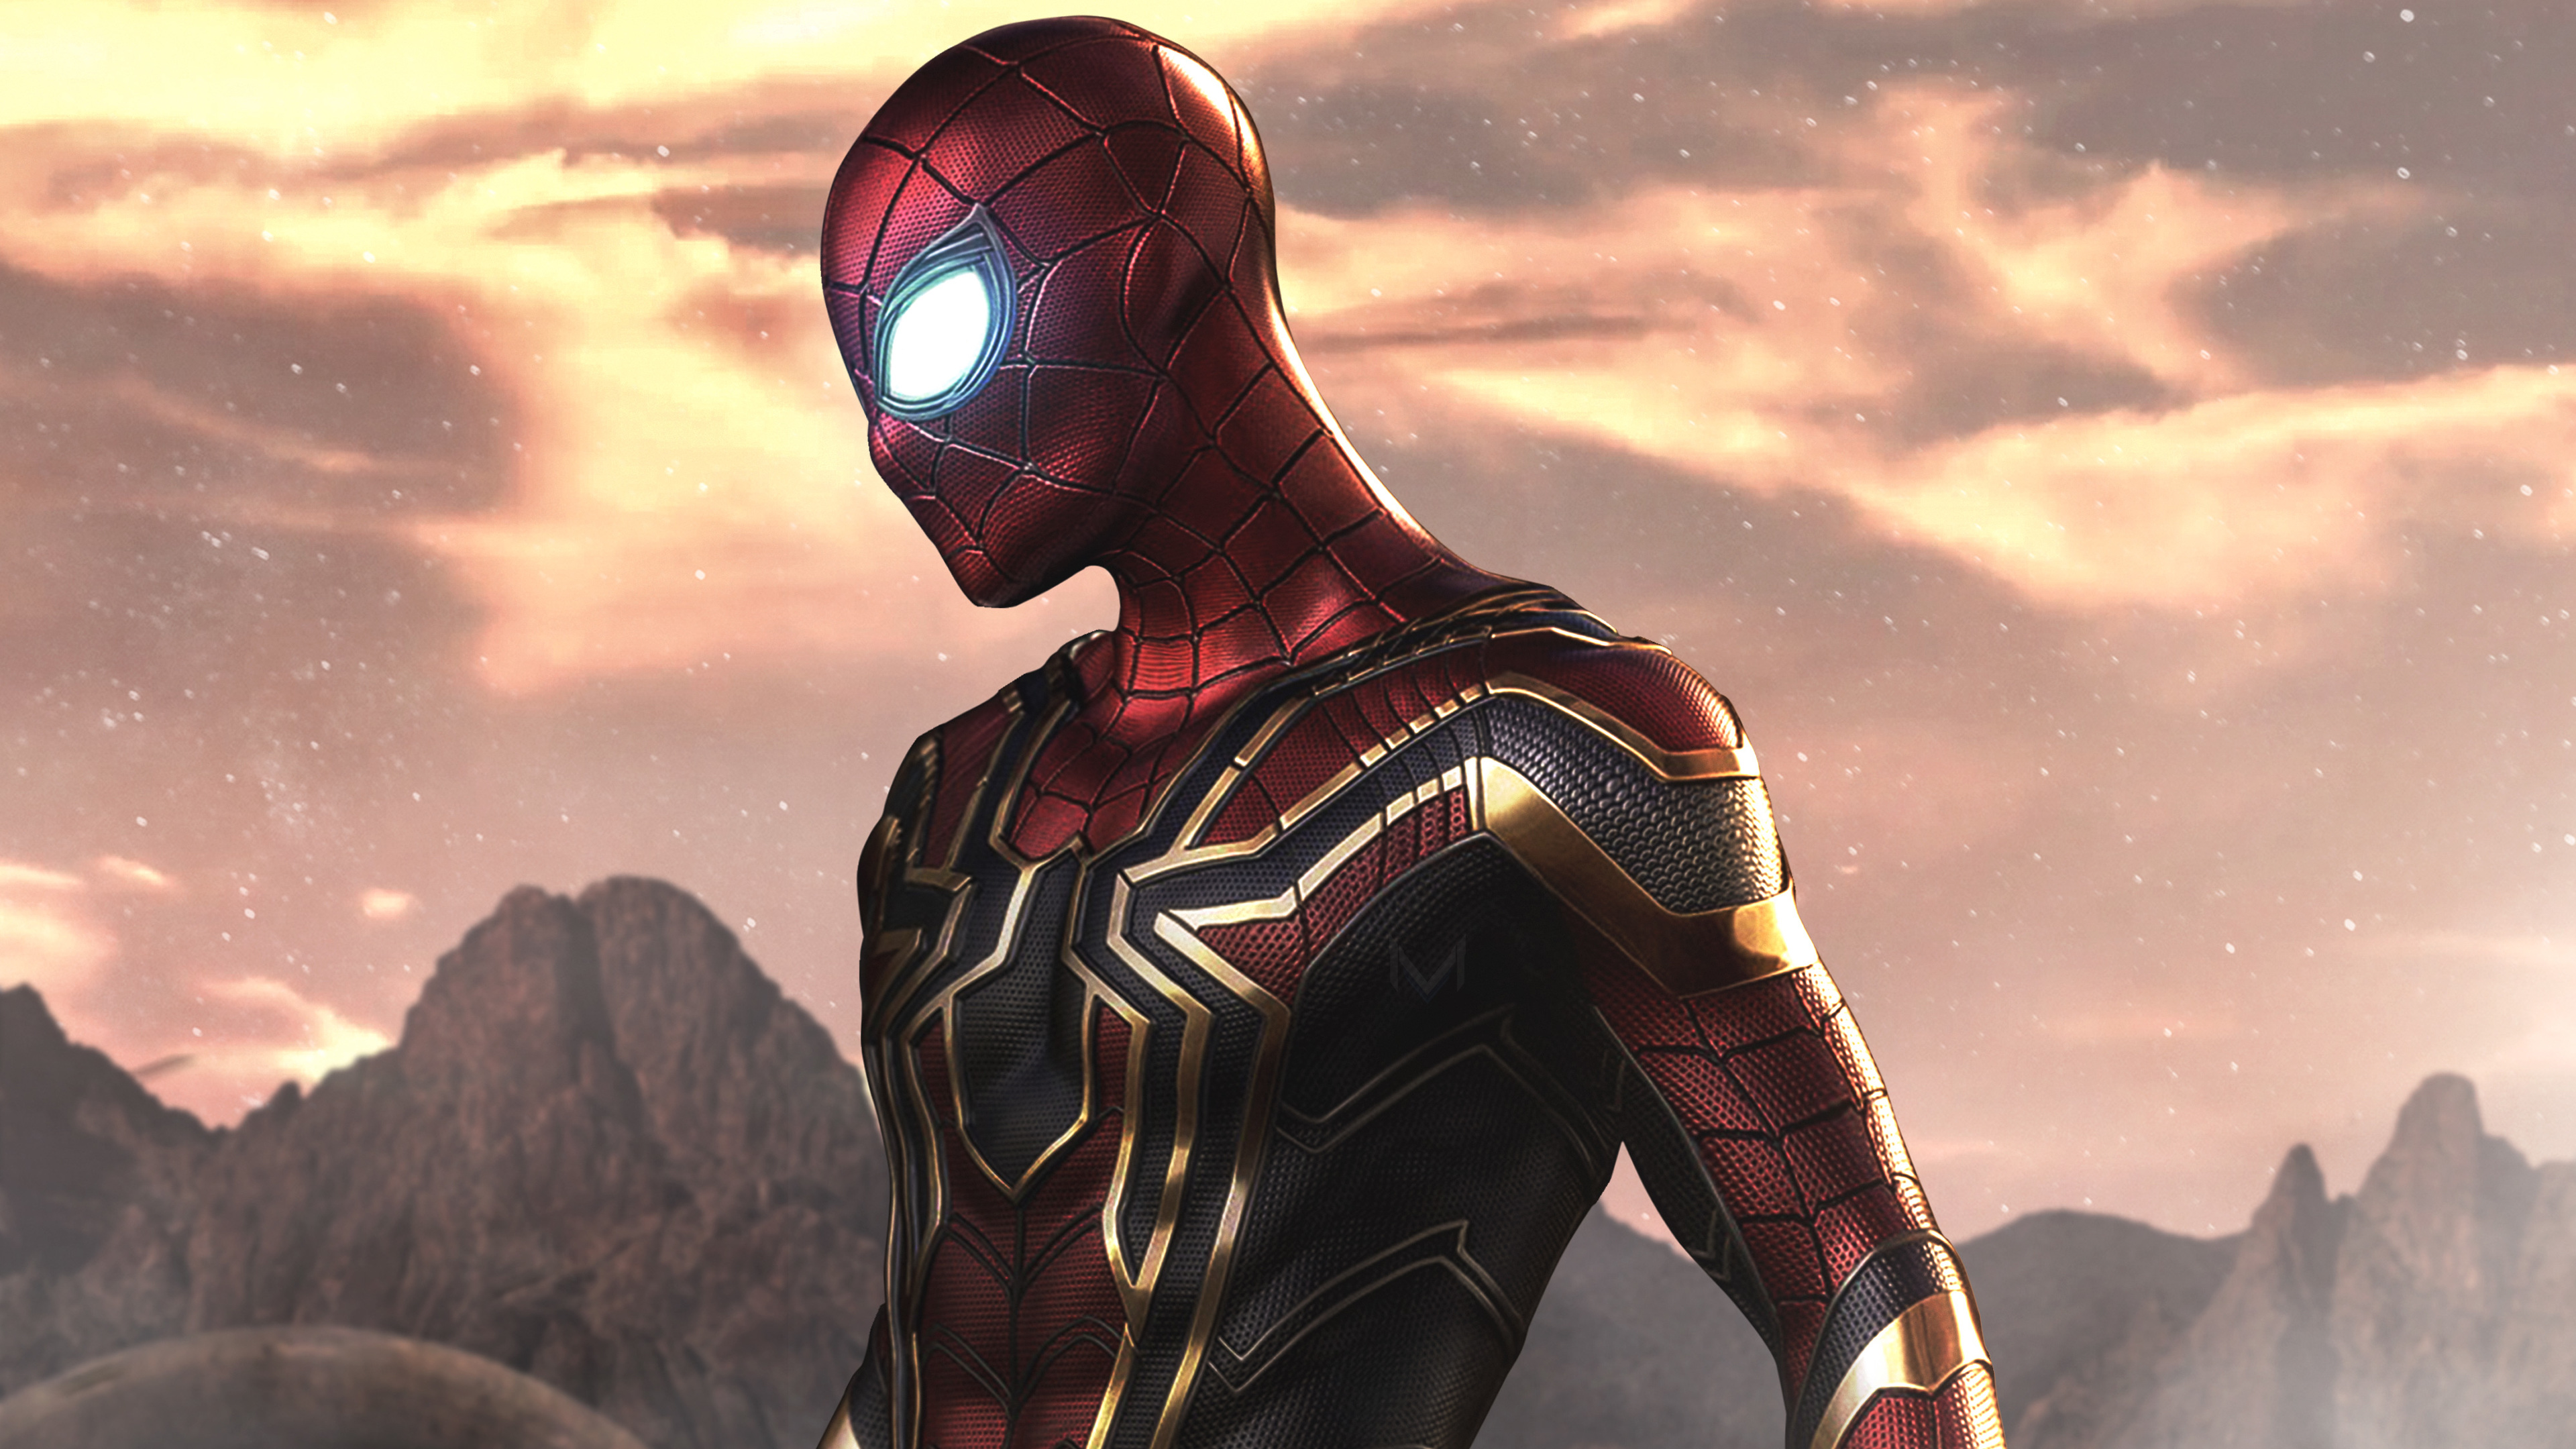 spiderman far from home movie 1537645061 - Spiderman Far From Home Movie - tom holland wallpapers, superheroes wallpapers, spiderman far from home wallpapers, movies wallpapers, hd-wallpapers, digital art wallpapers, deviantart wallpapers, artwork wallpapers, artist wallpapers, 4k-wallpapers, 2019 movies wallpapers